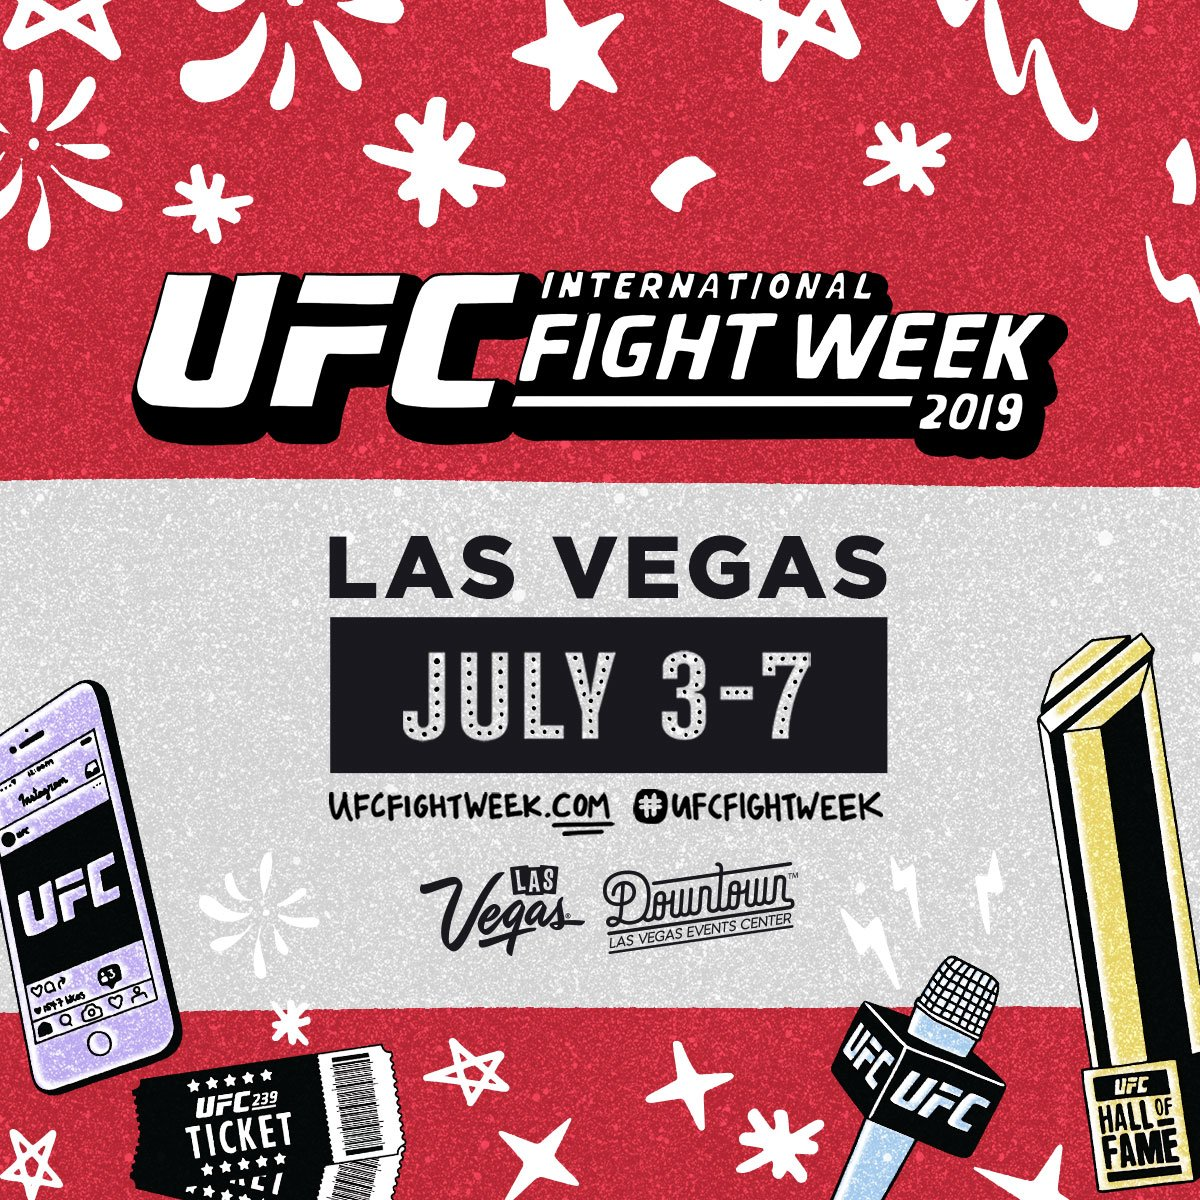 The biggest week of the year is coming up!  Sign up for #UFCFightWeek ➡️ http://www.ufcfightweek.com  pic.twitter.com/nf2Mbcc5TT